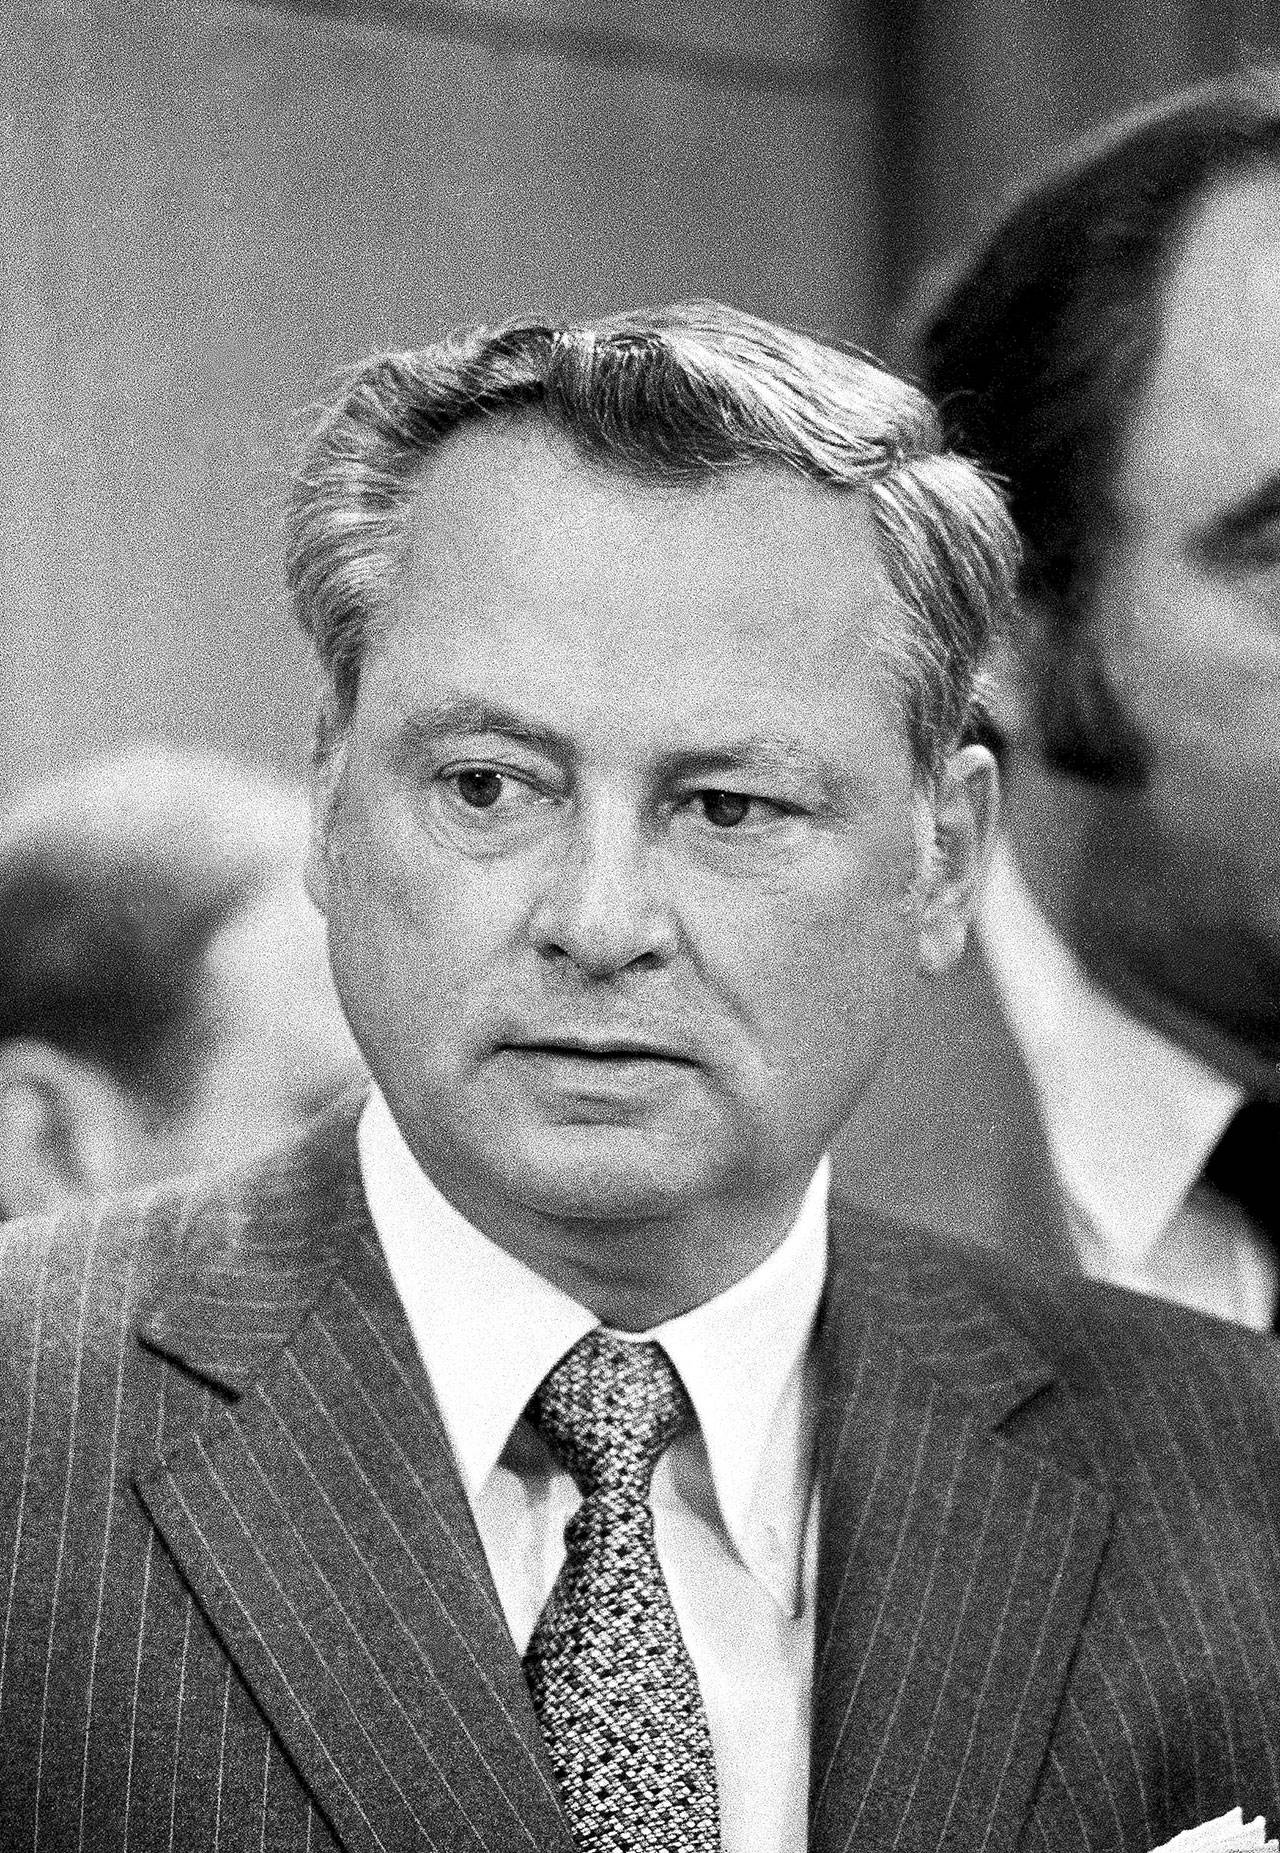 Barron Hilton, head of the Hilton Hotel chain, is shown in Chicago on May 20, 1980. Hilton, a hotel magnate who expanded his father's chain and became a founding owner in the American Football League, has died. Hilton's family says he died Thursday of natural causes at age 91 in his Los Angeles home. He transformed Hilton into the industry's top brand during his 30 years as its chief executive. (AP Photo/Charles E. Knoblock, File)